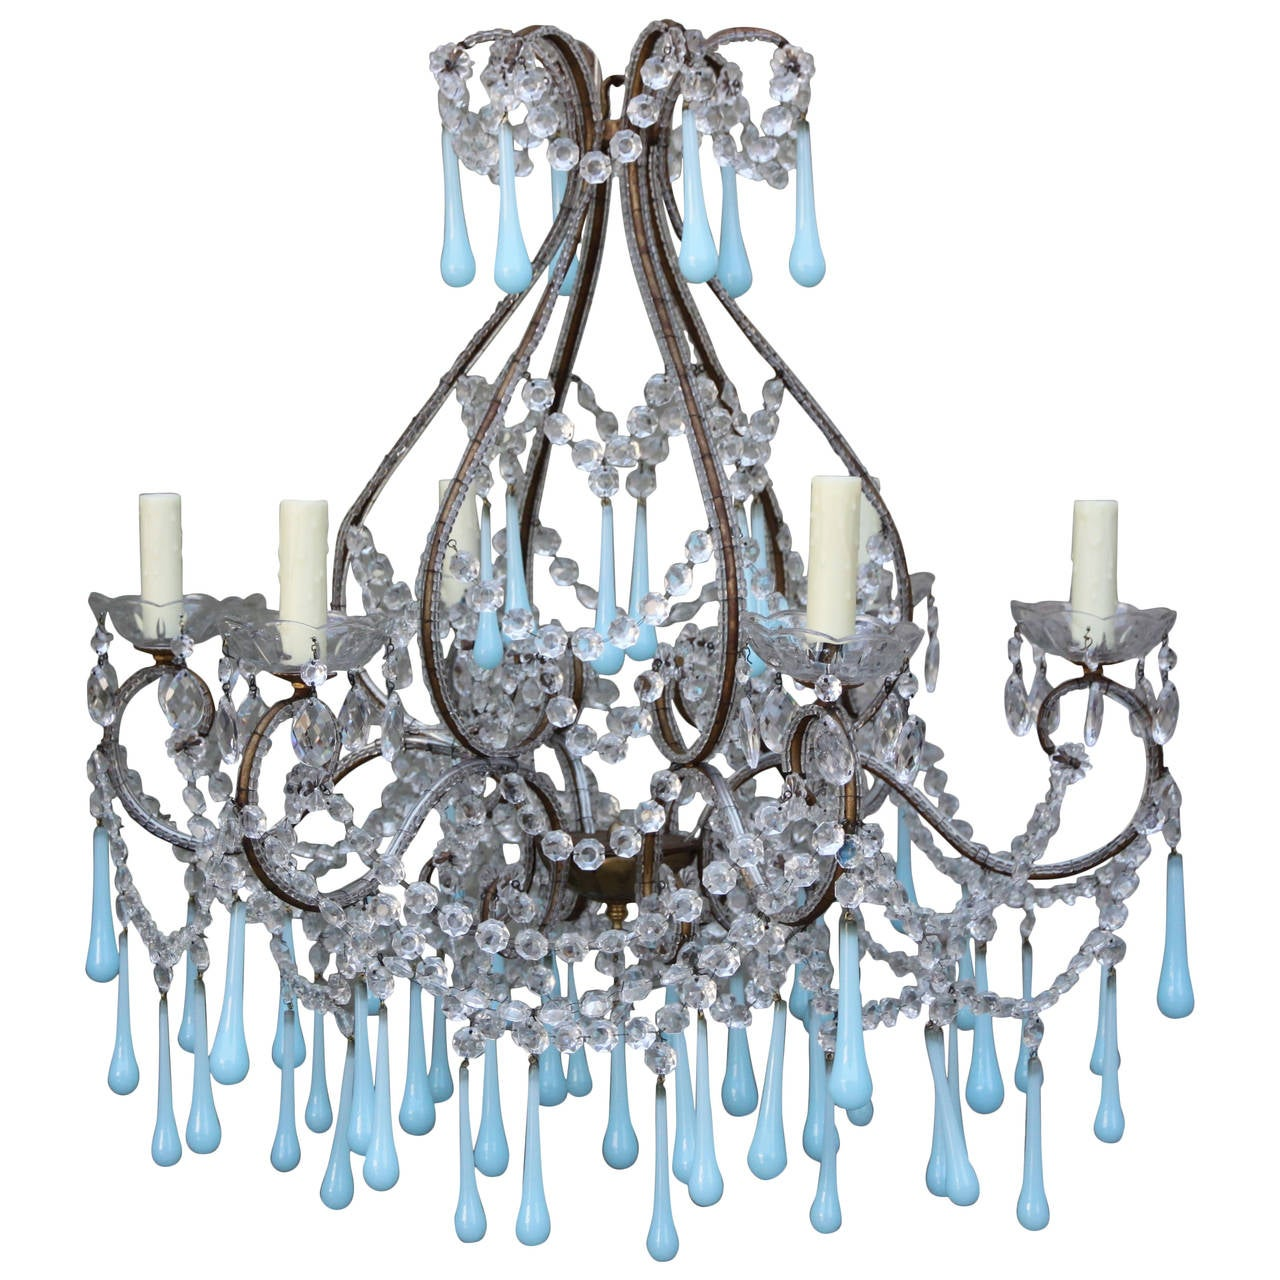 Crystal beaded chandelier with soft blue murano drops for sale at 1stdibs - Chandelier glass beads ...